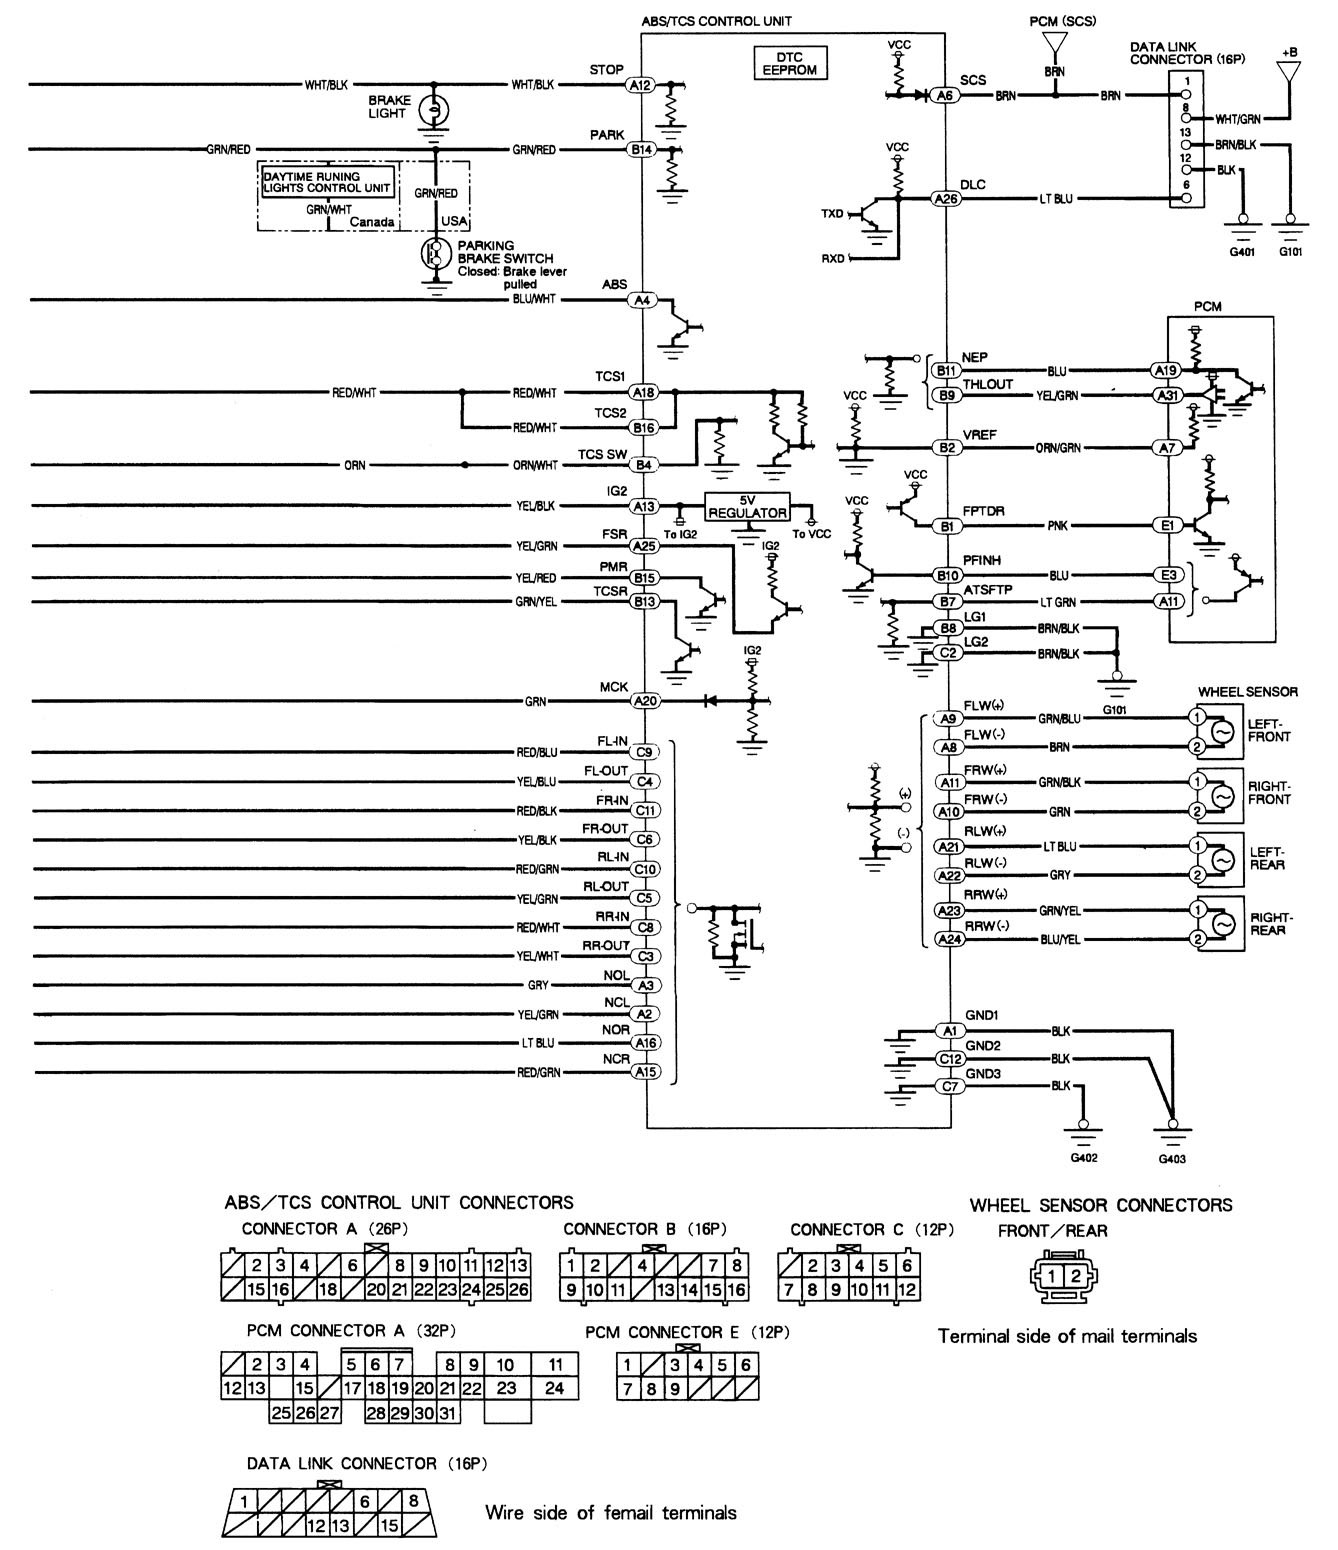 Acura Tl Brake Diagram Wiring Diagrams Mdx 2006 1999 2002 Controls